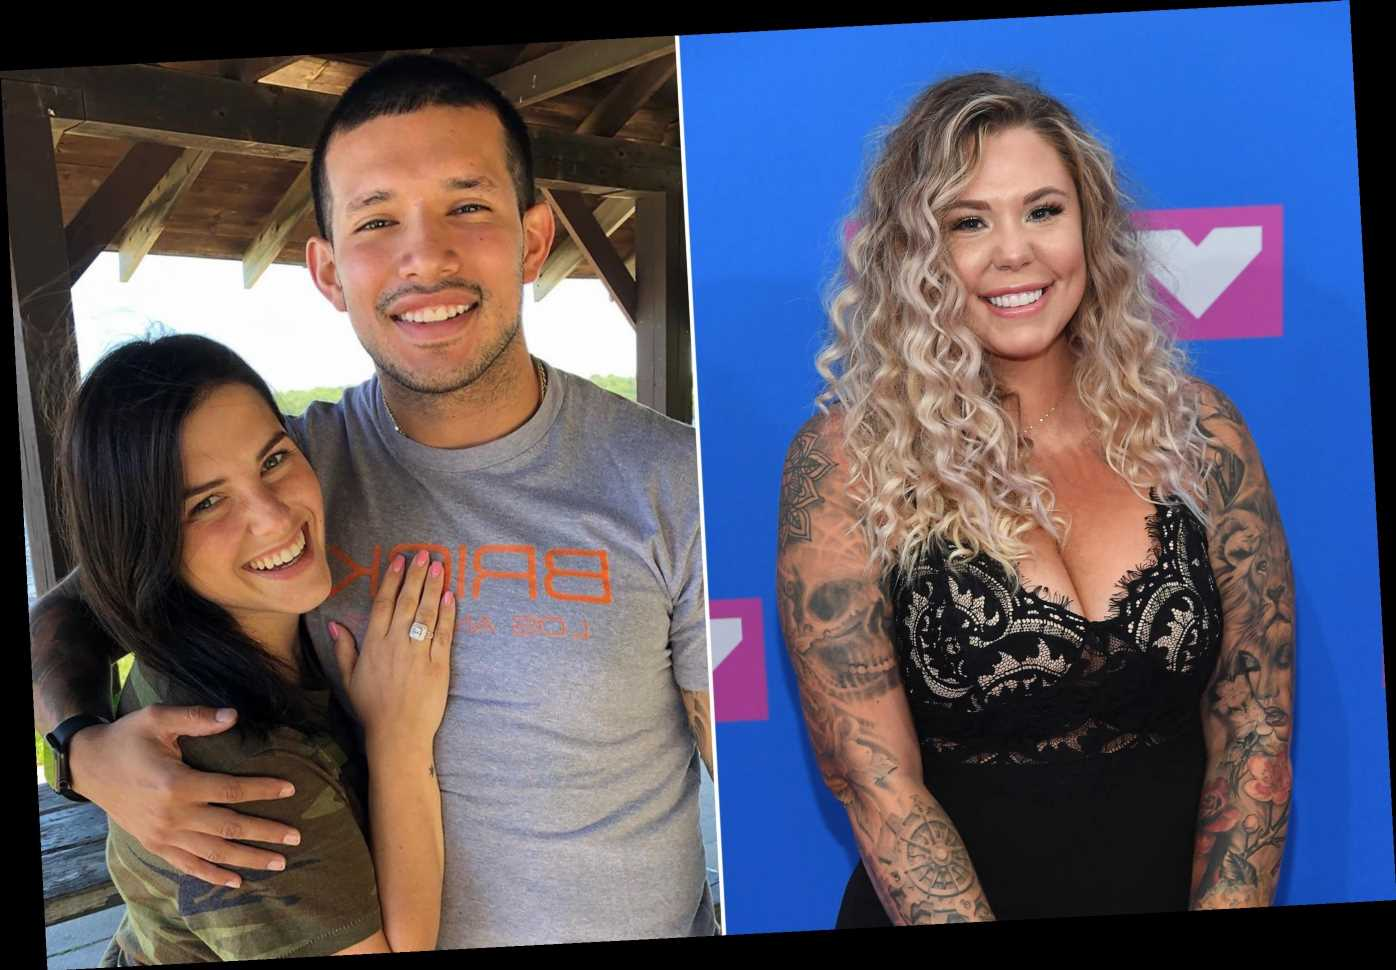 Kailyn Lowry Claims Ex Javi Marroquin Was Cheating on His Fiancée During Her Pregnancy